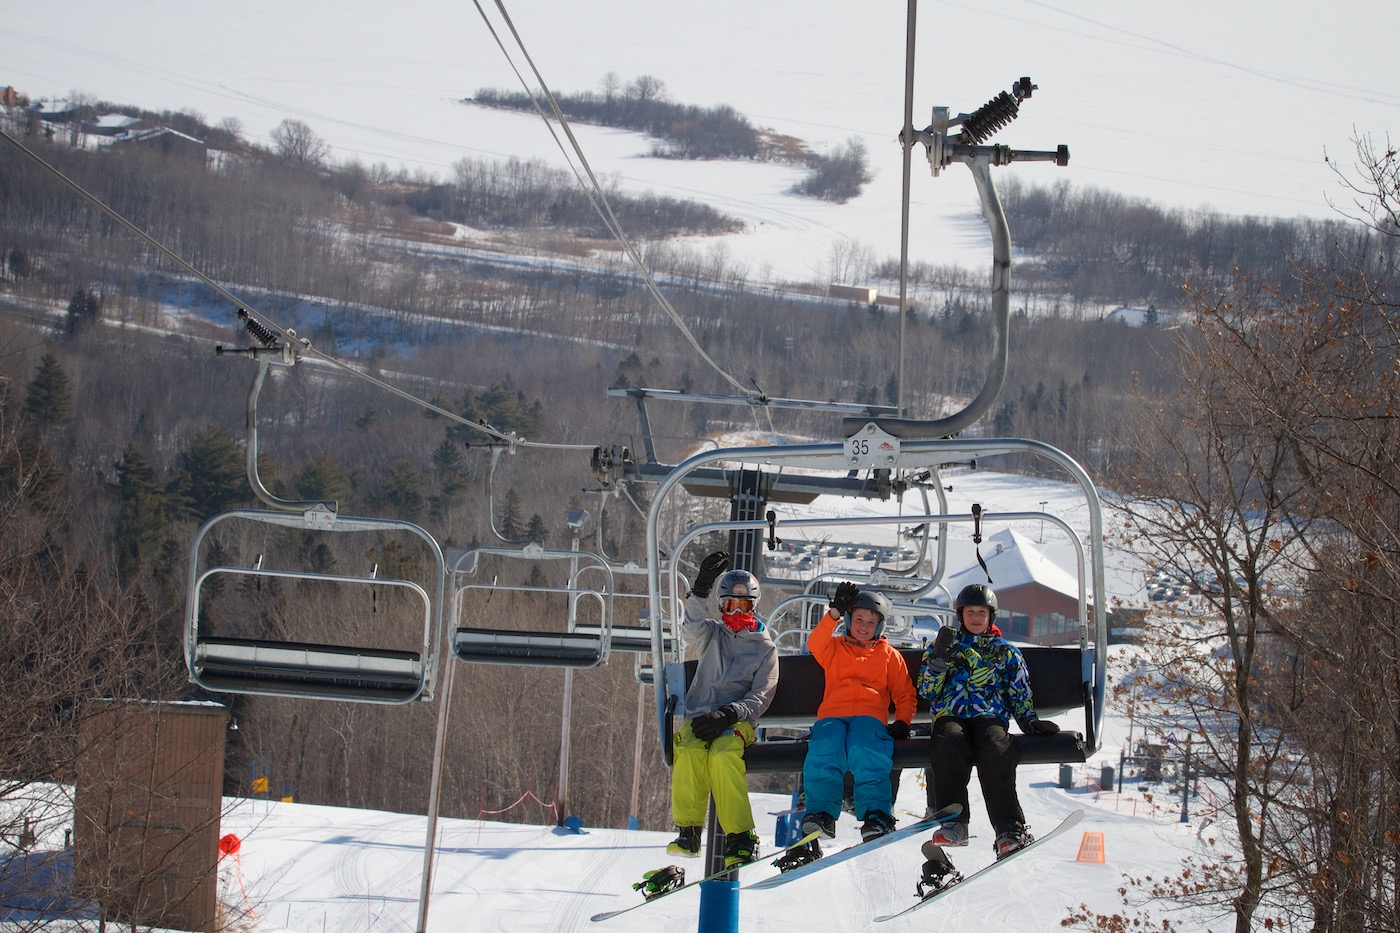 3 kids on a chair lift in the winter